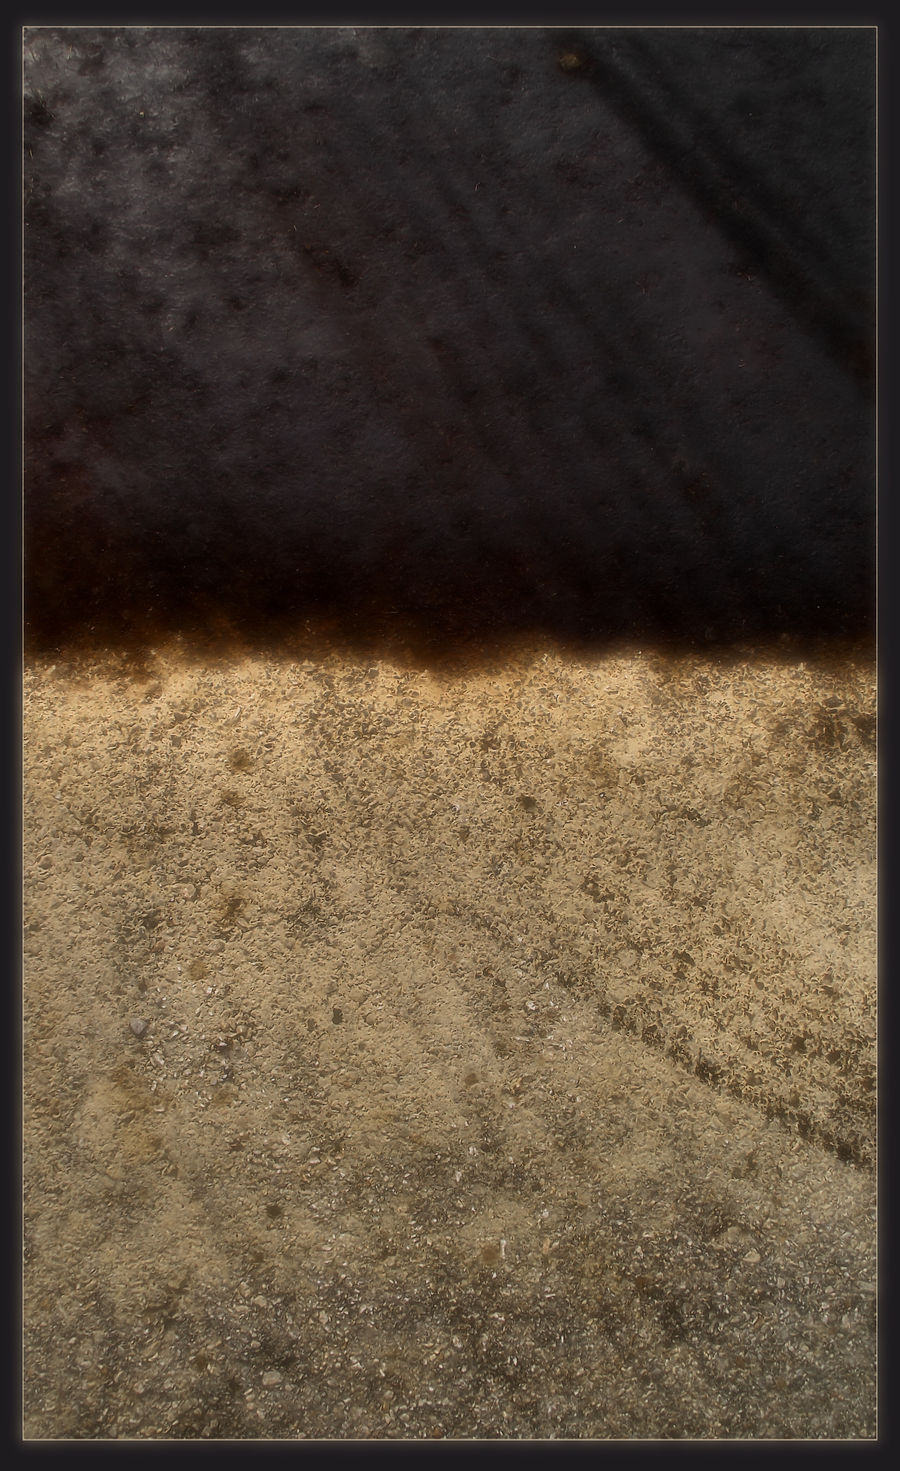 a pavement Rothko by rickster155